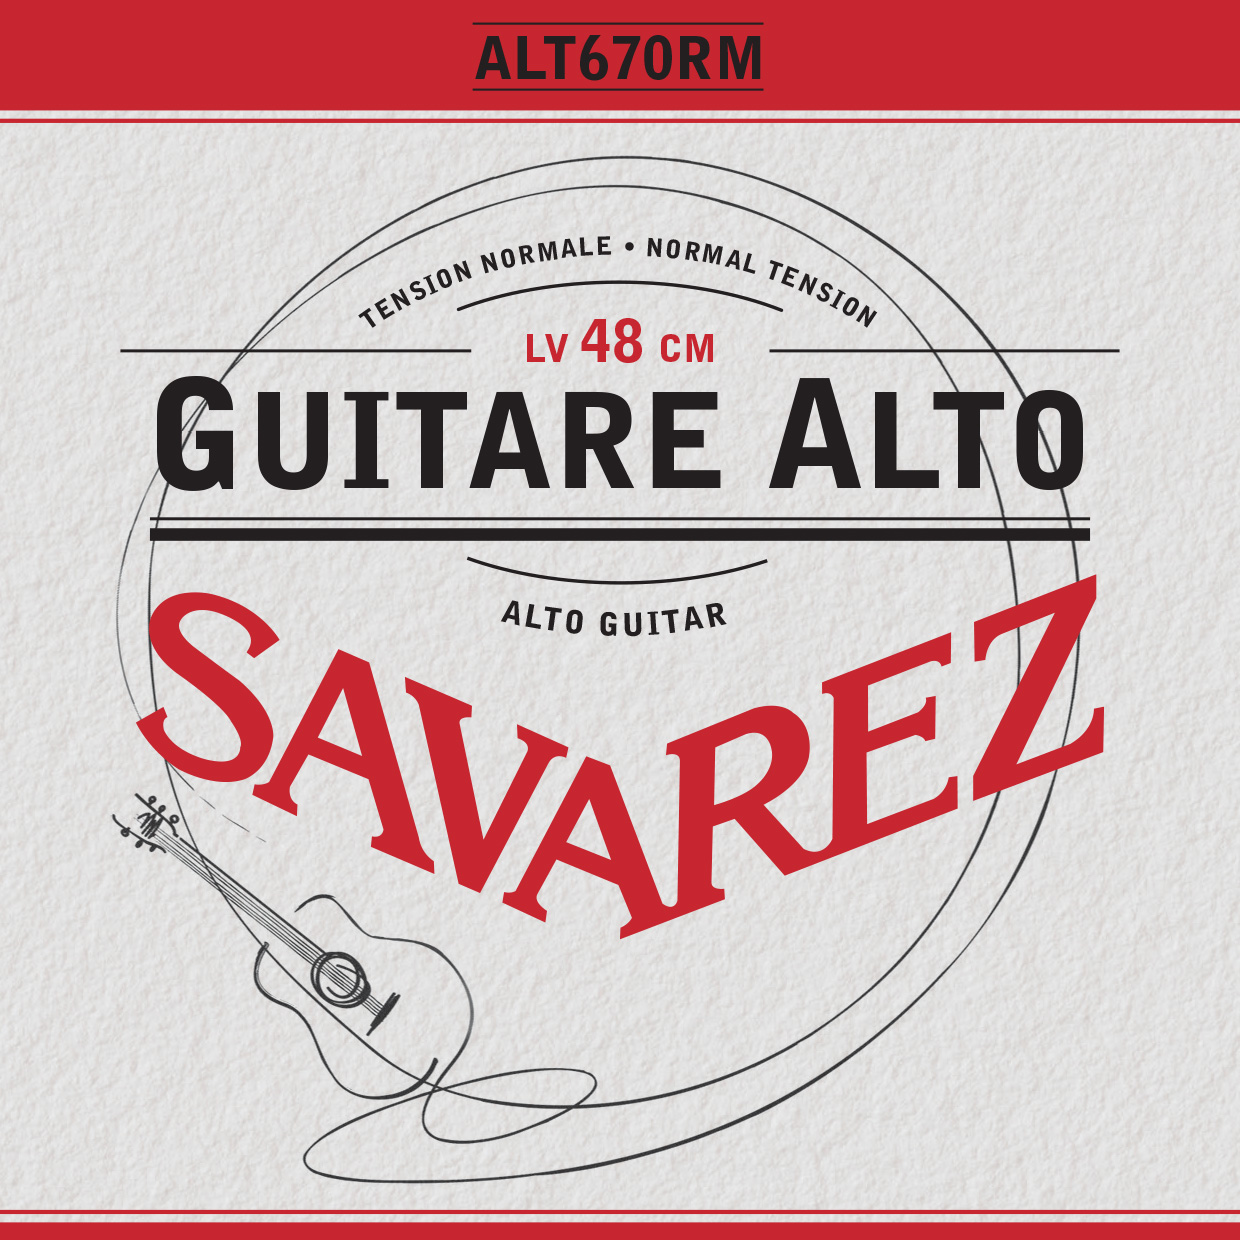 GUITARE ALTO NORMAL TENSION ALT670RM